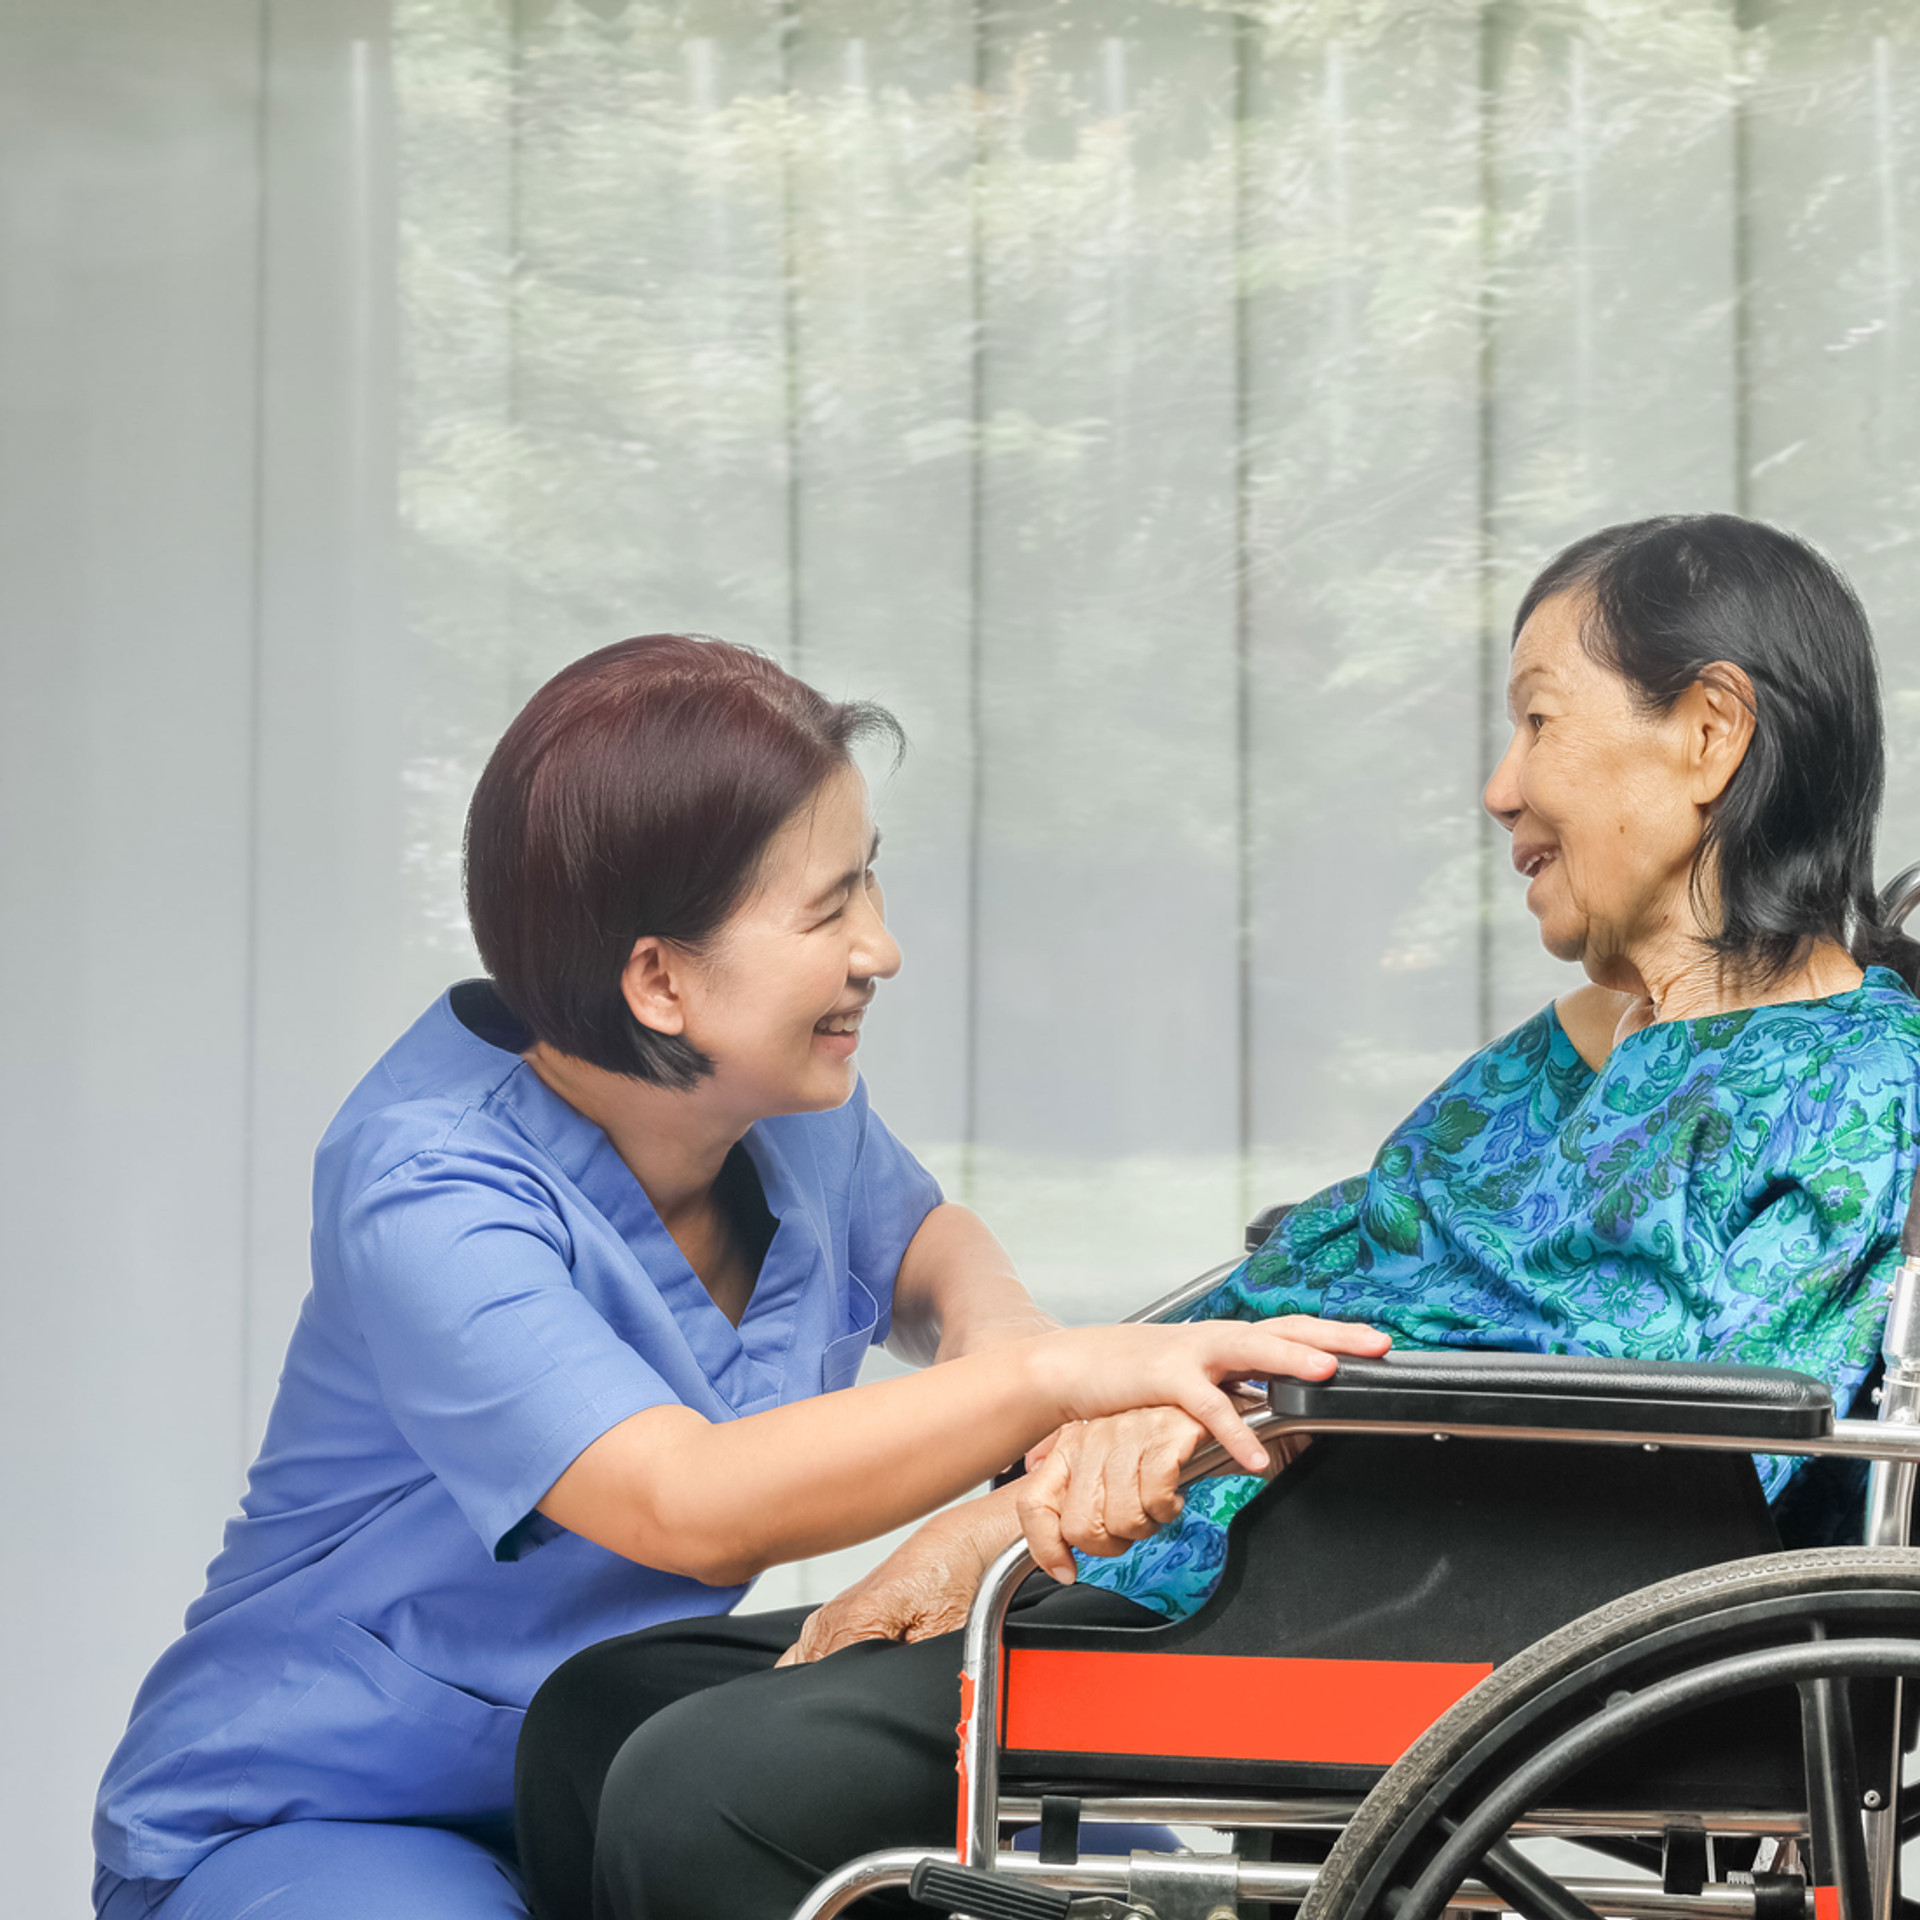 Nurse and Patient on Wheelchair